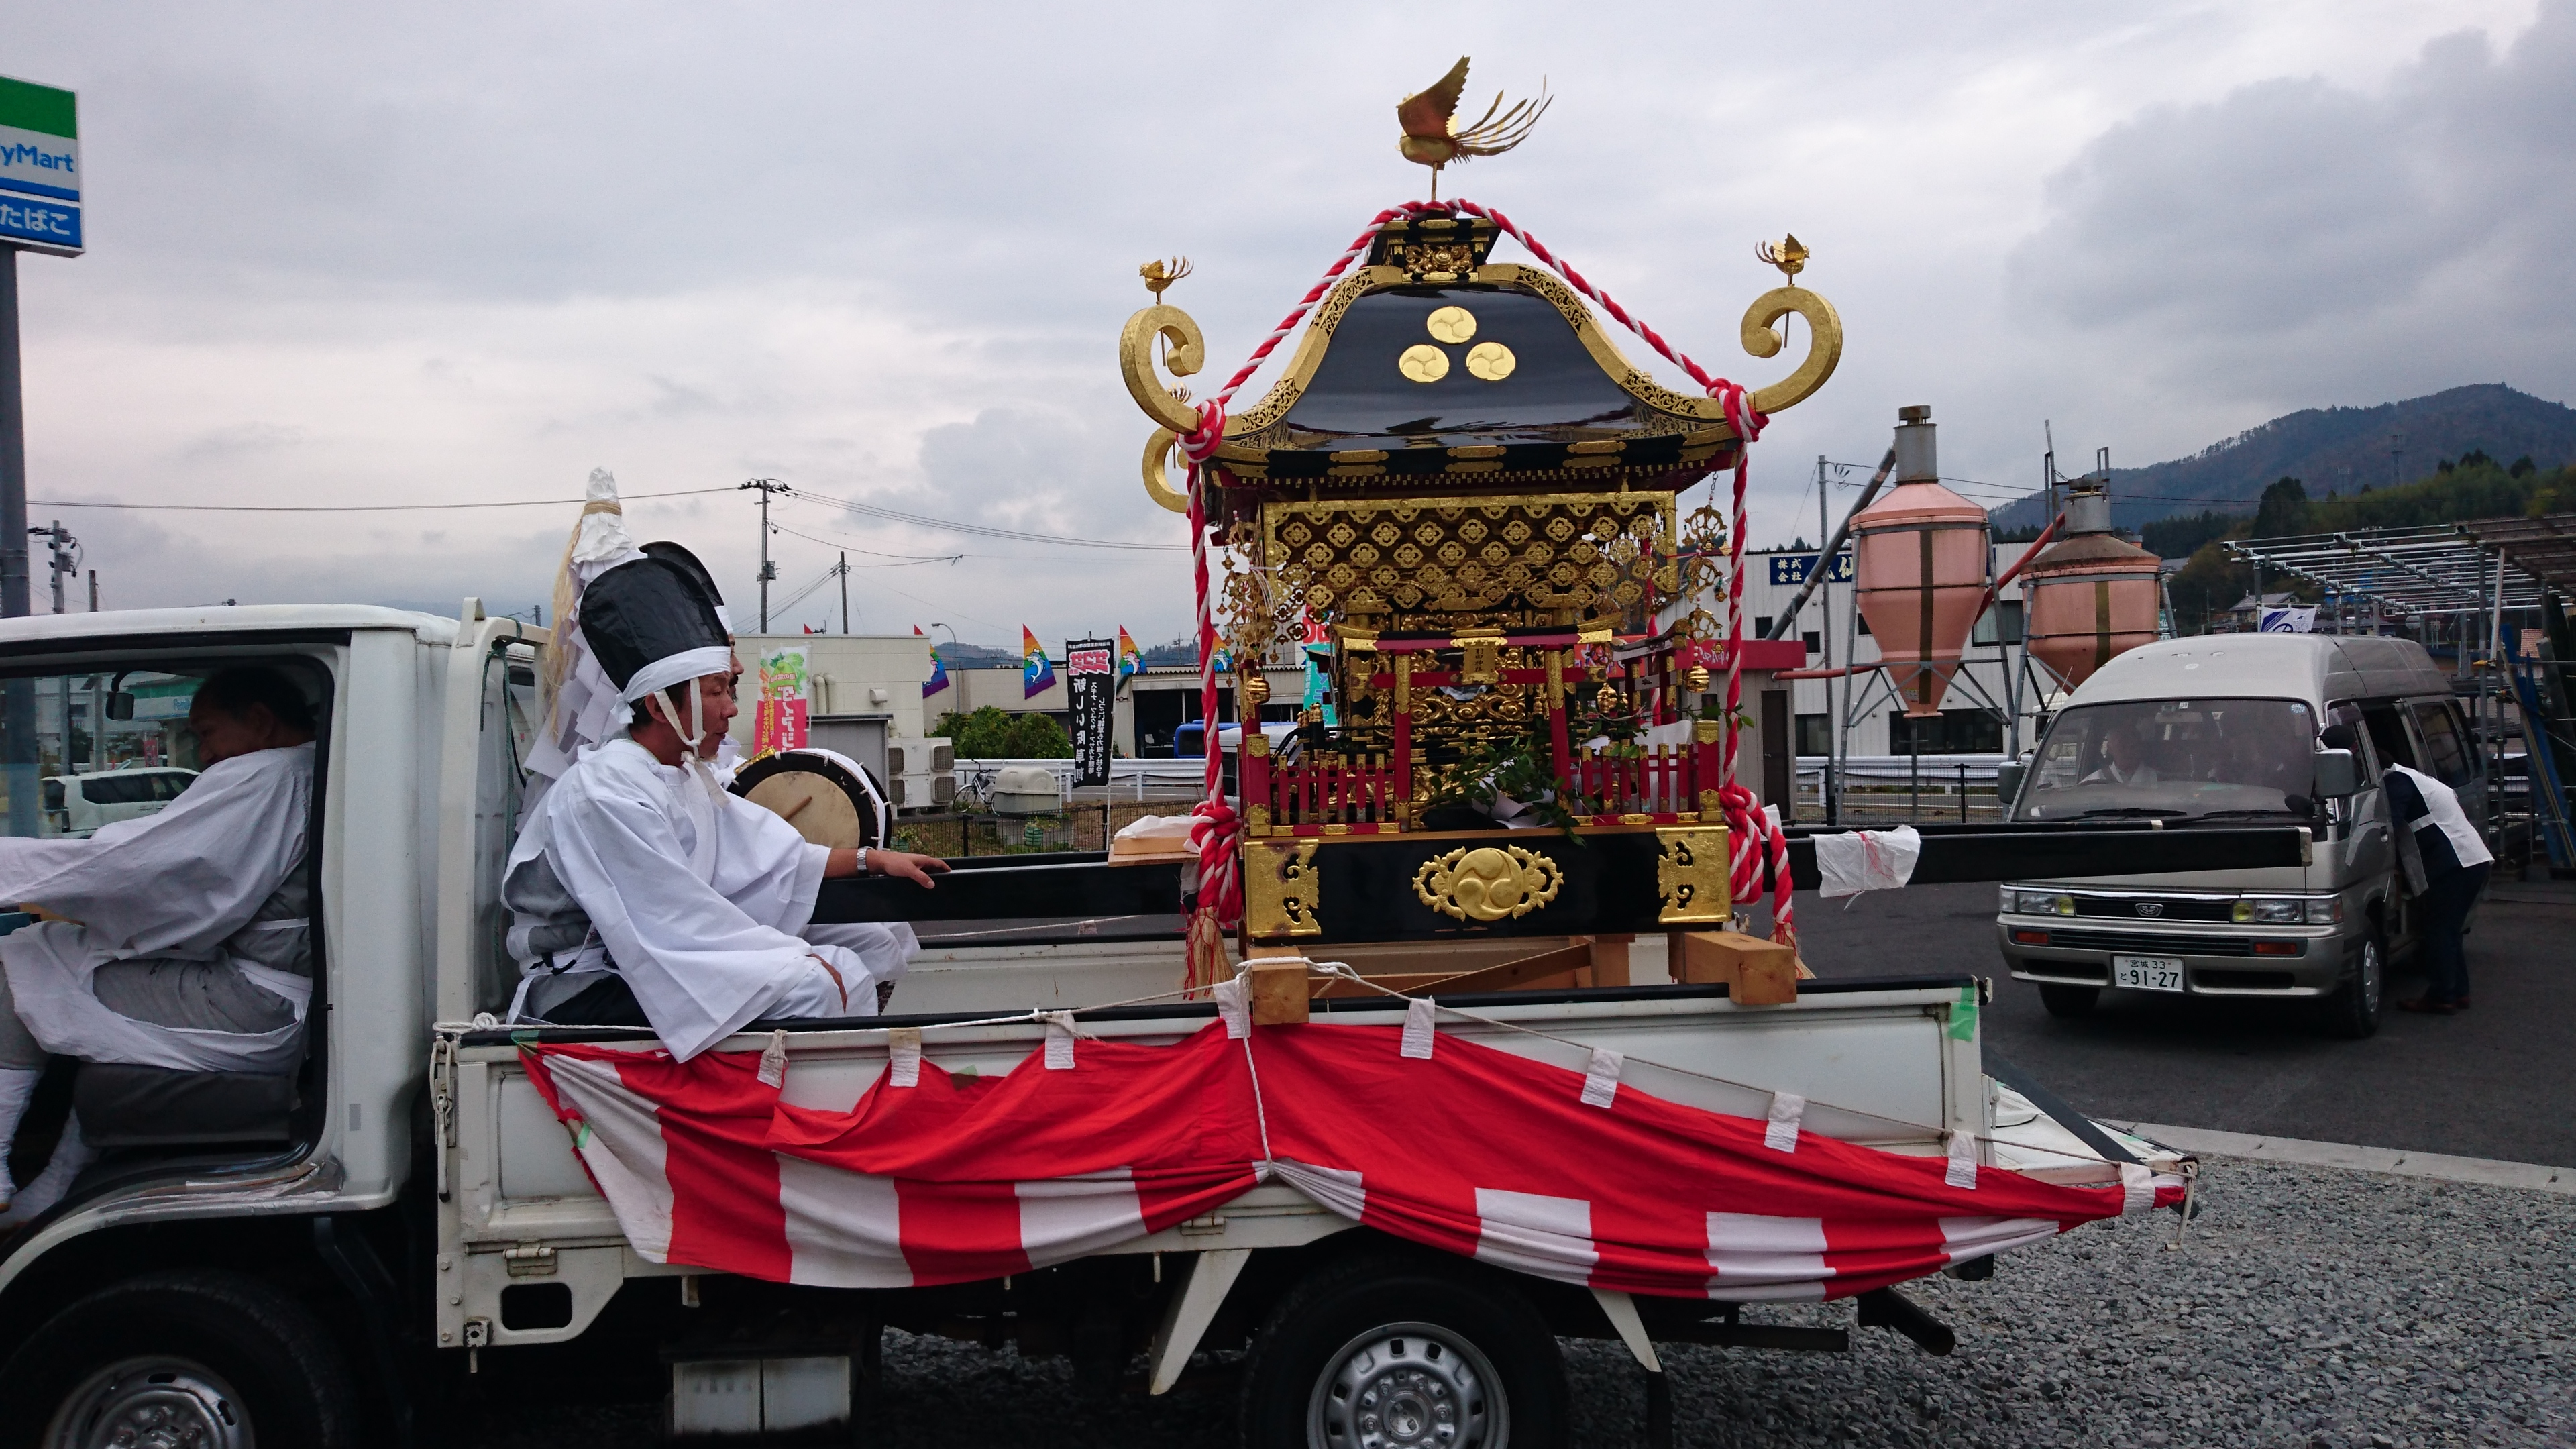 Picture of two young men in white robes traveling with the portable shrine on the back of a truck